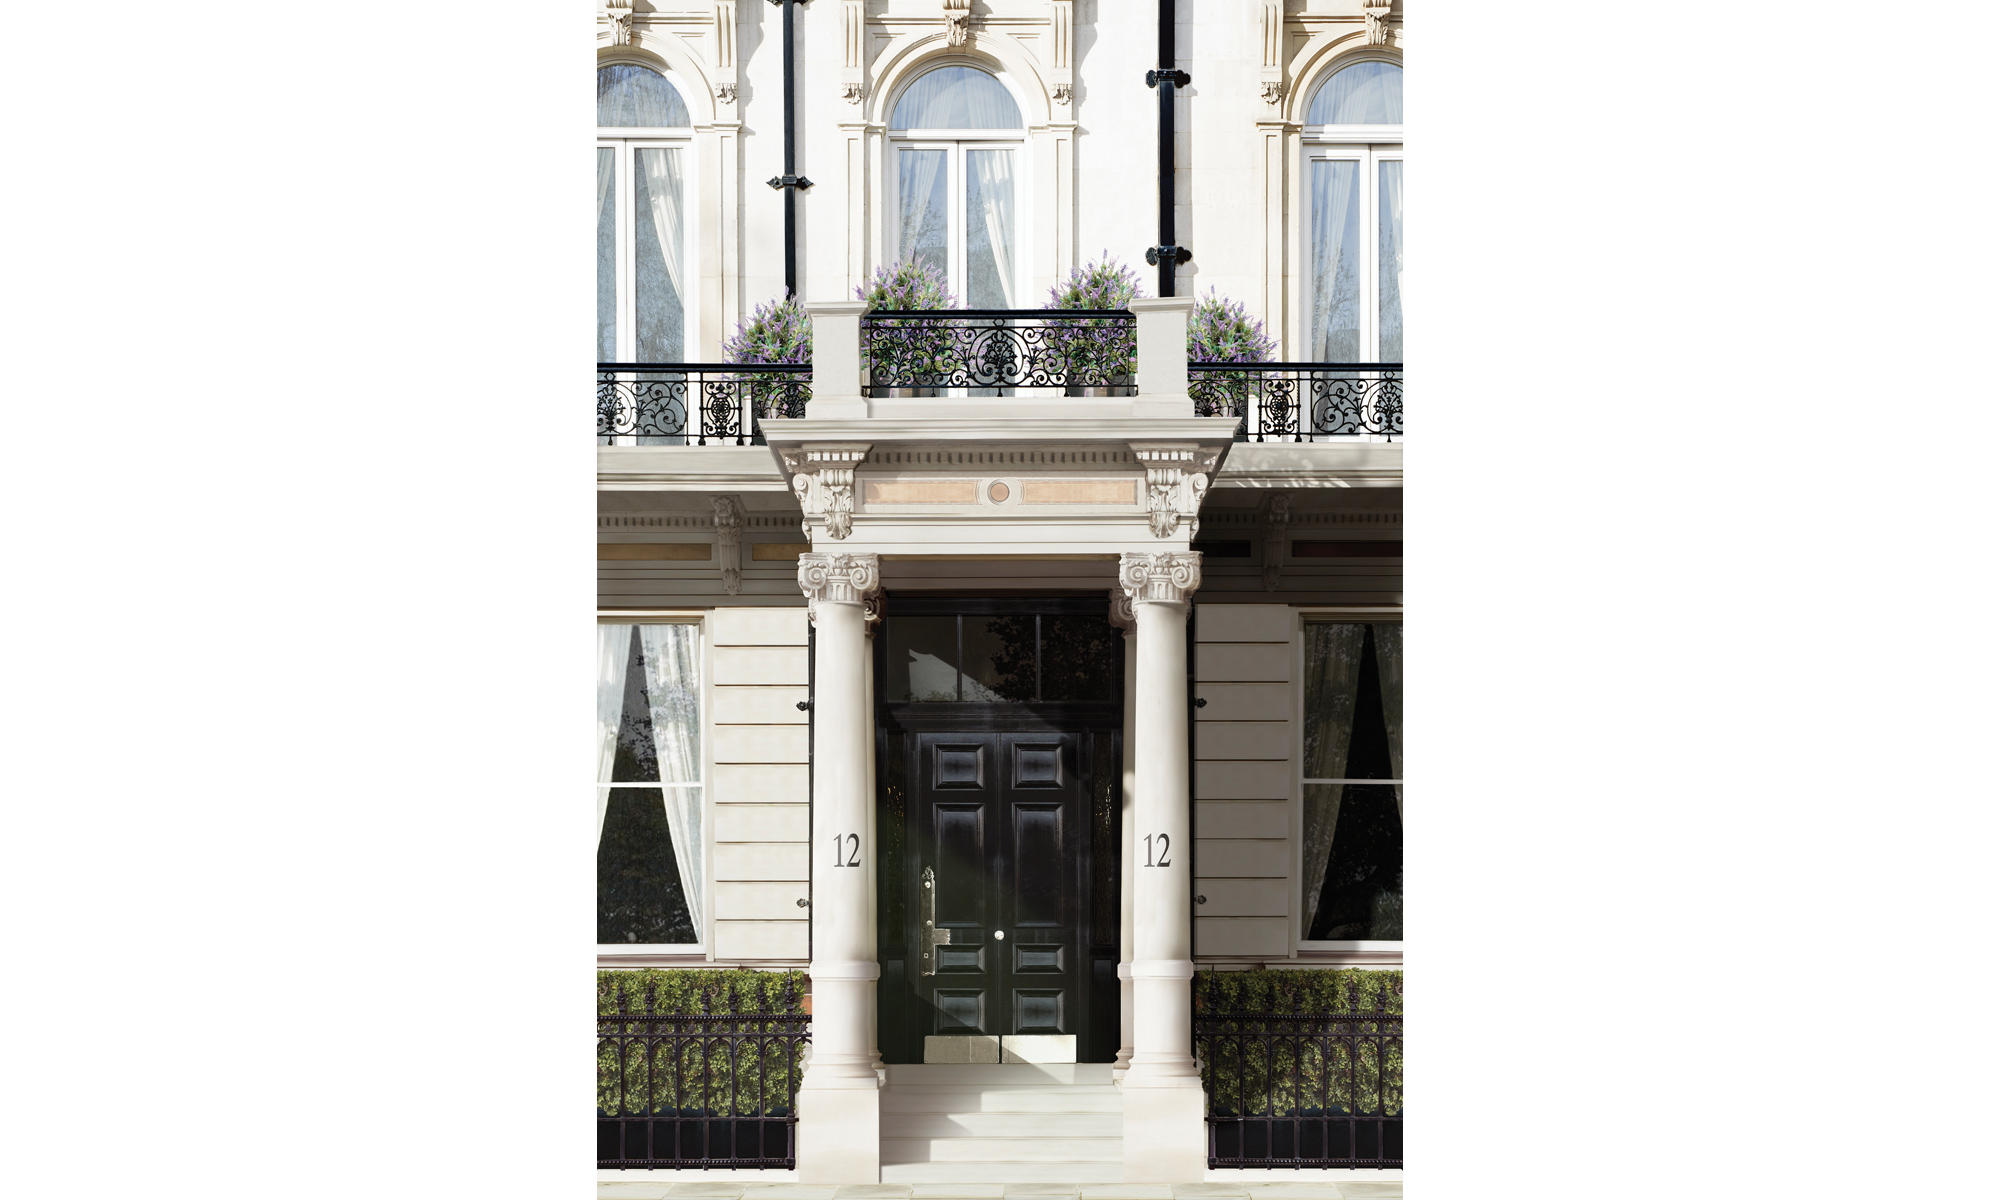 Portico columned apartment entrance doorway at Belgravia Gate.